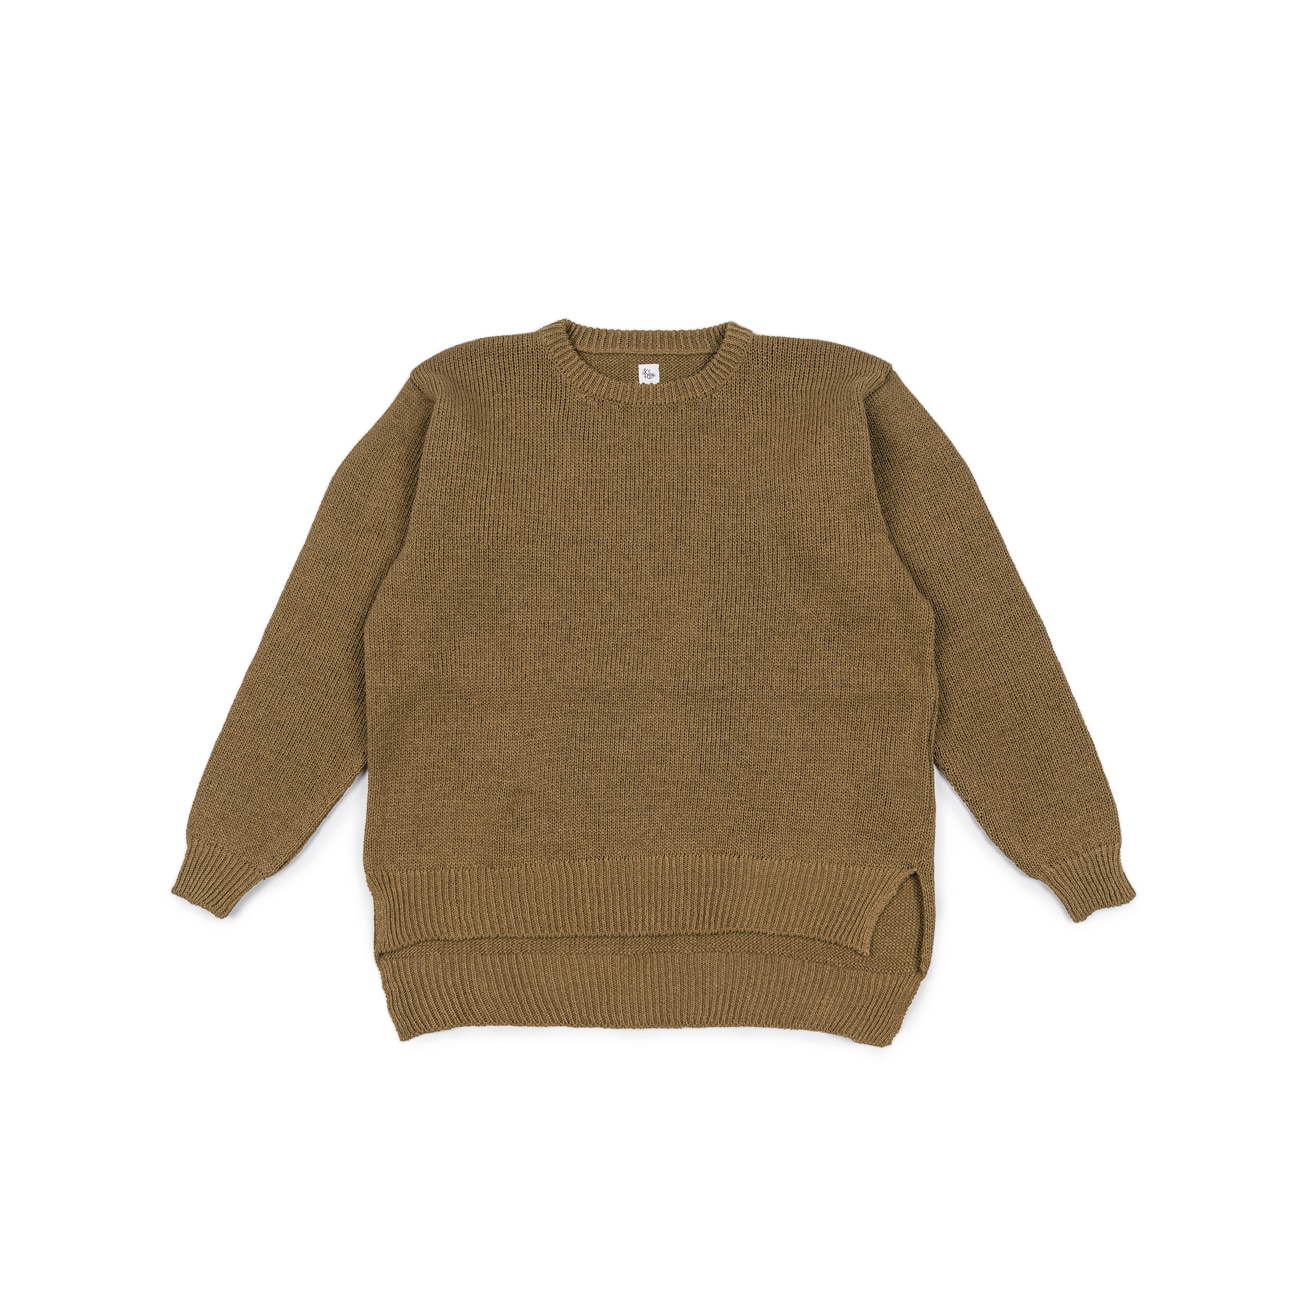 Crewneck Long Sleeved Pullover Knit